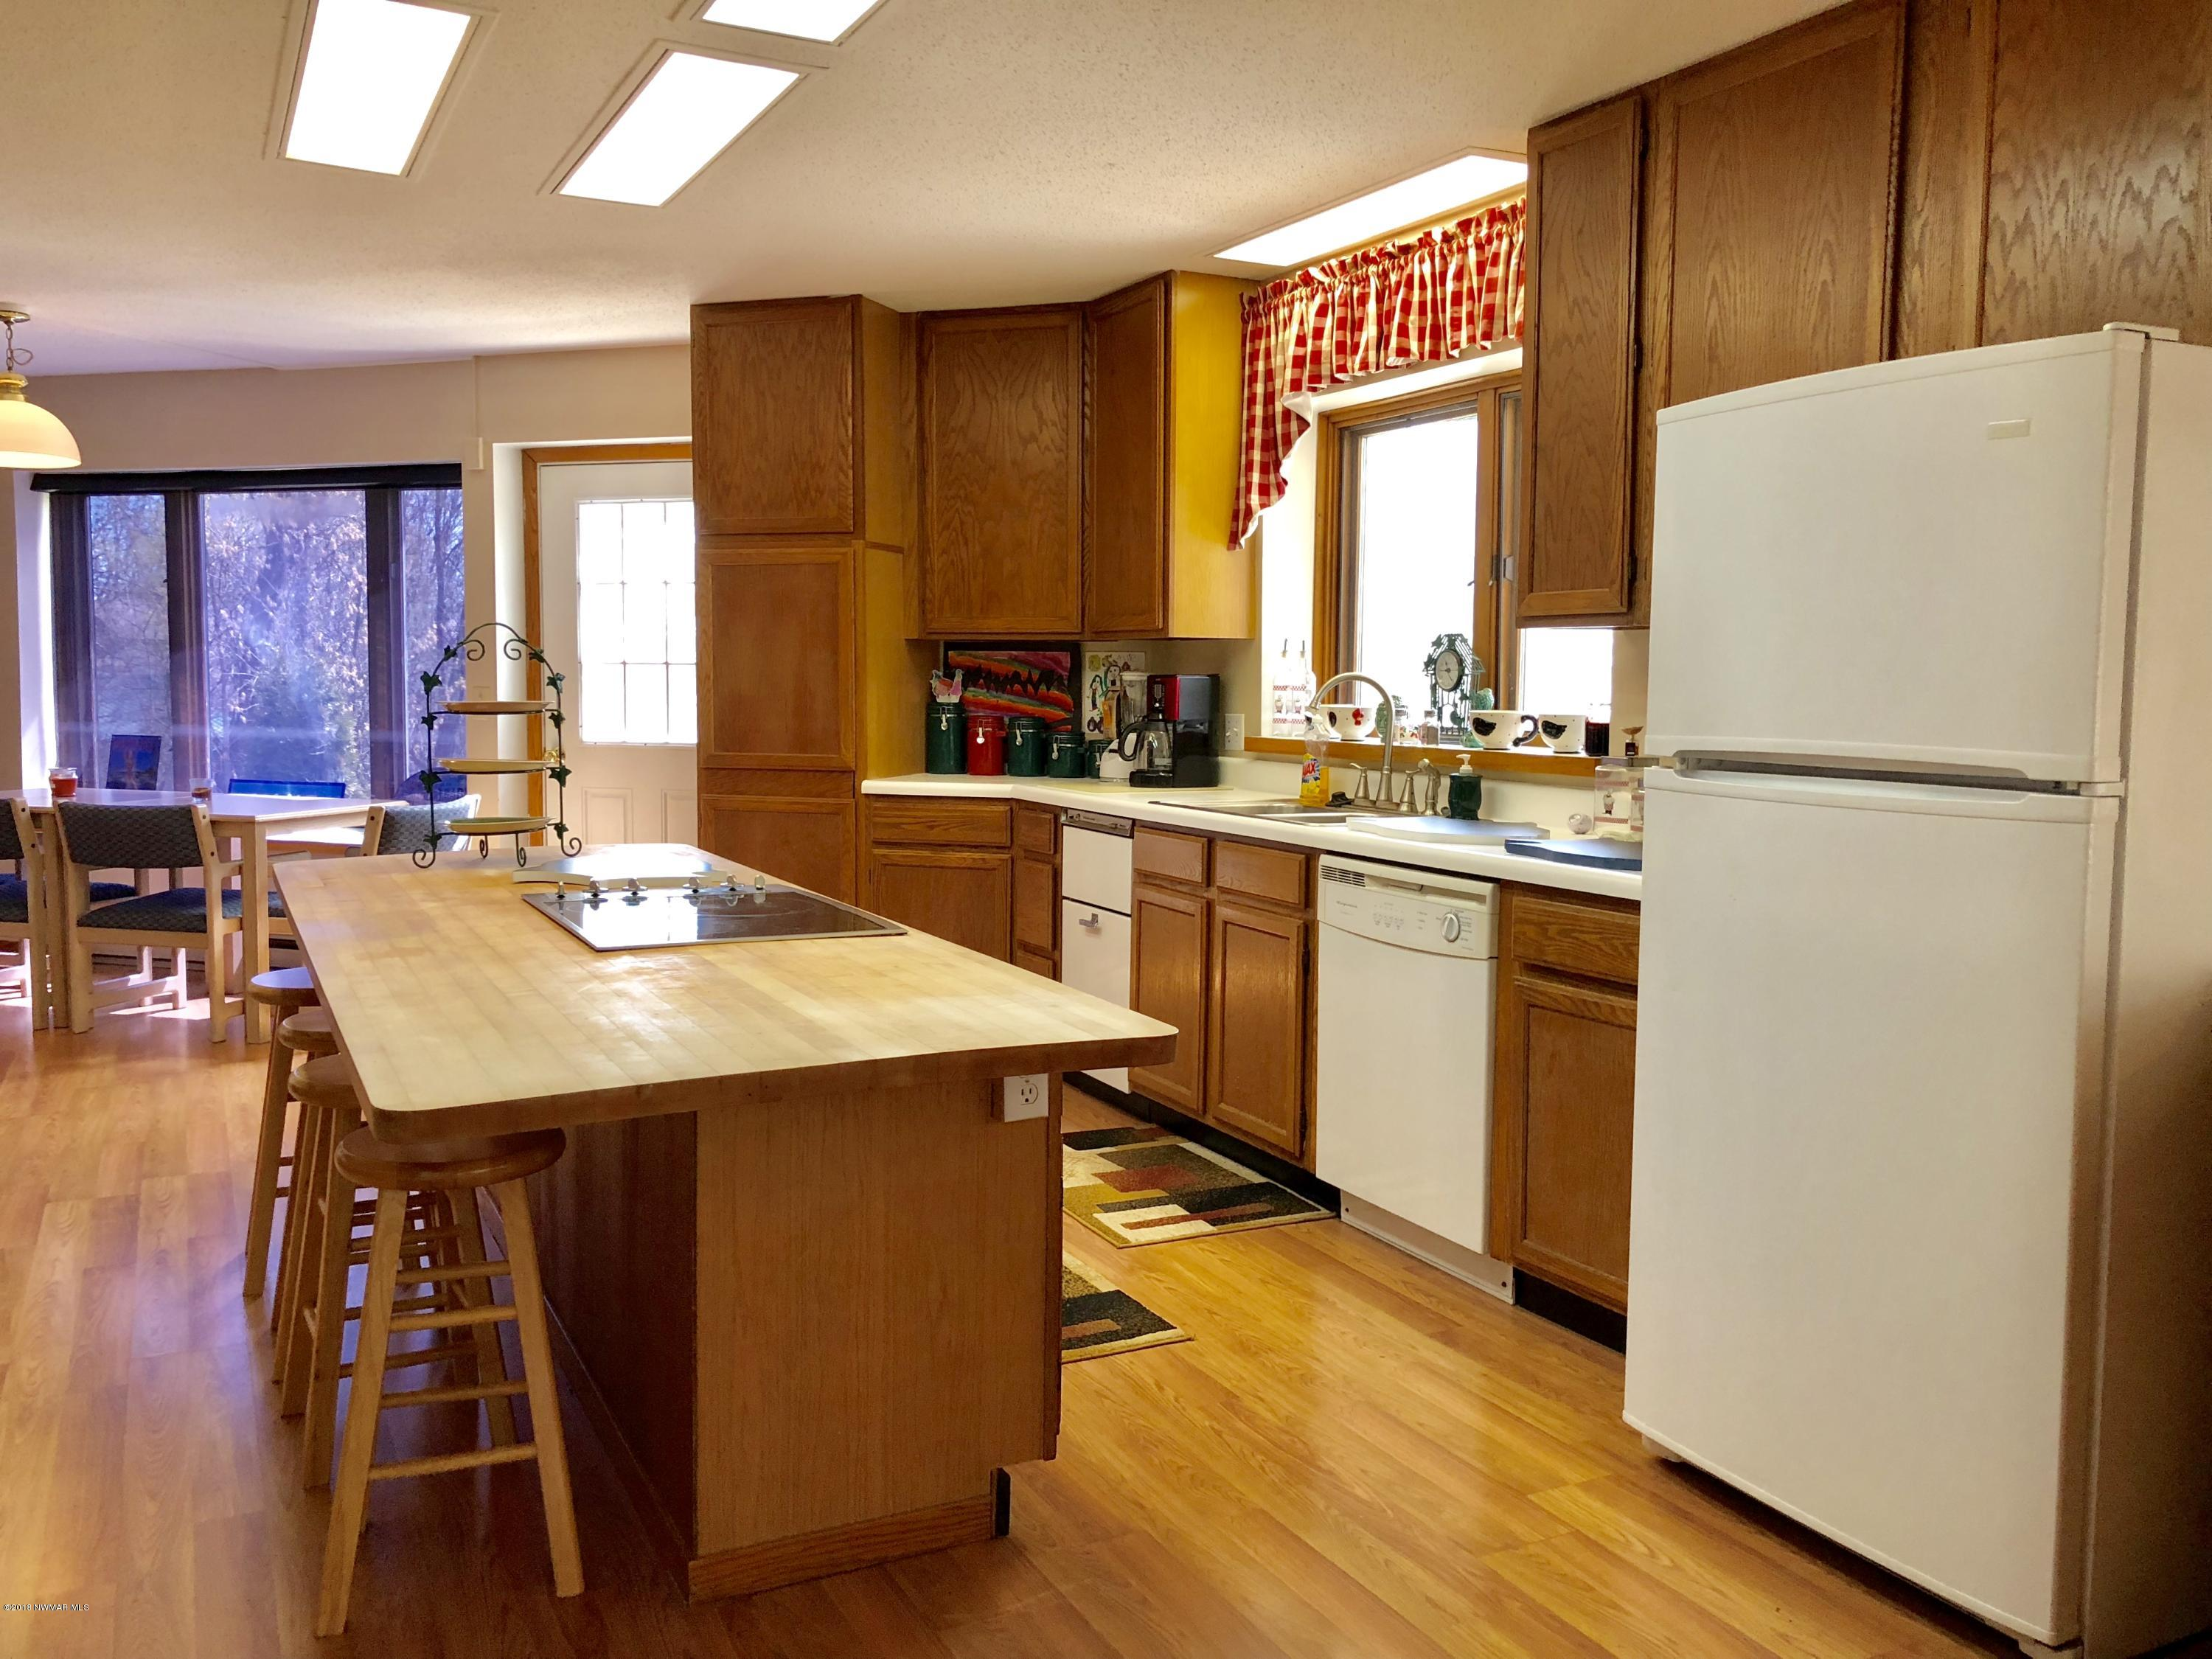 Plenty of storage throughout the kitchen and home